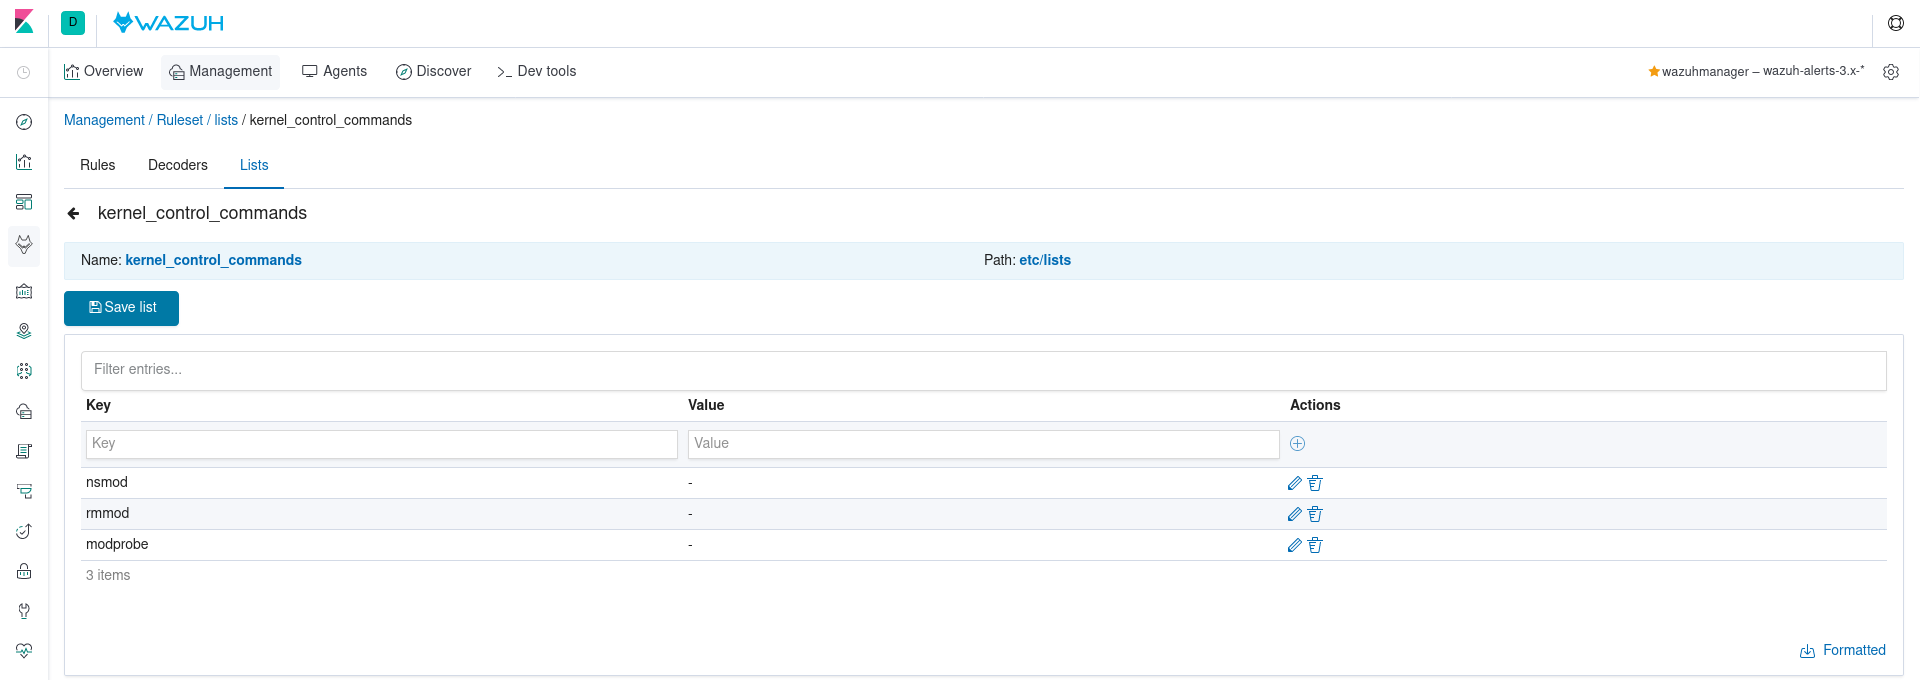 Example of CDB list management using the WUI